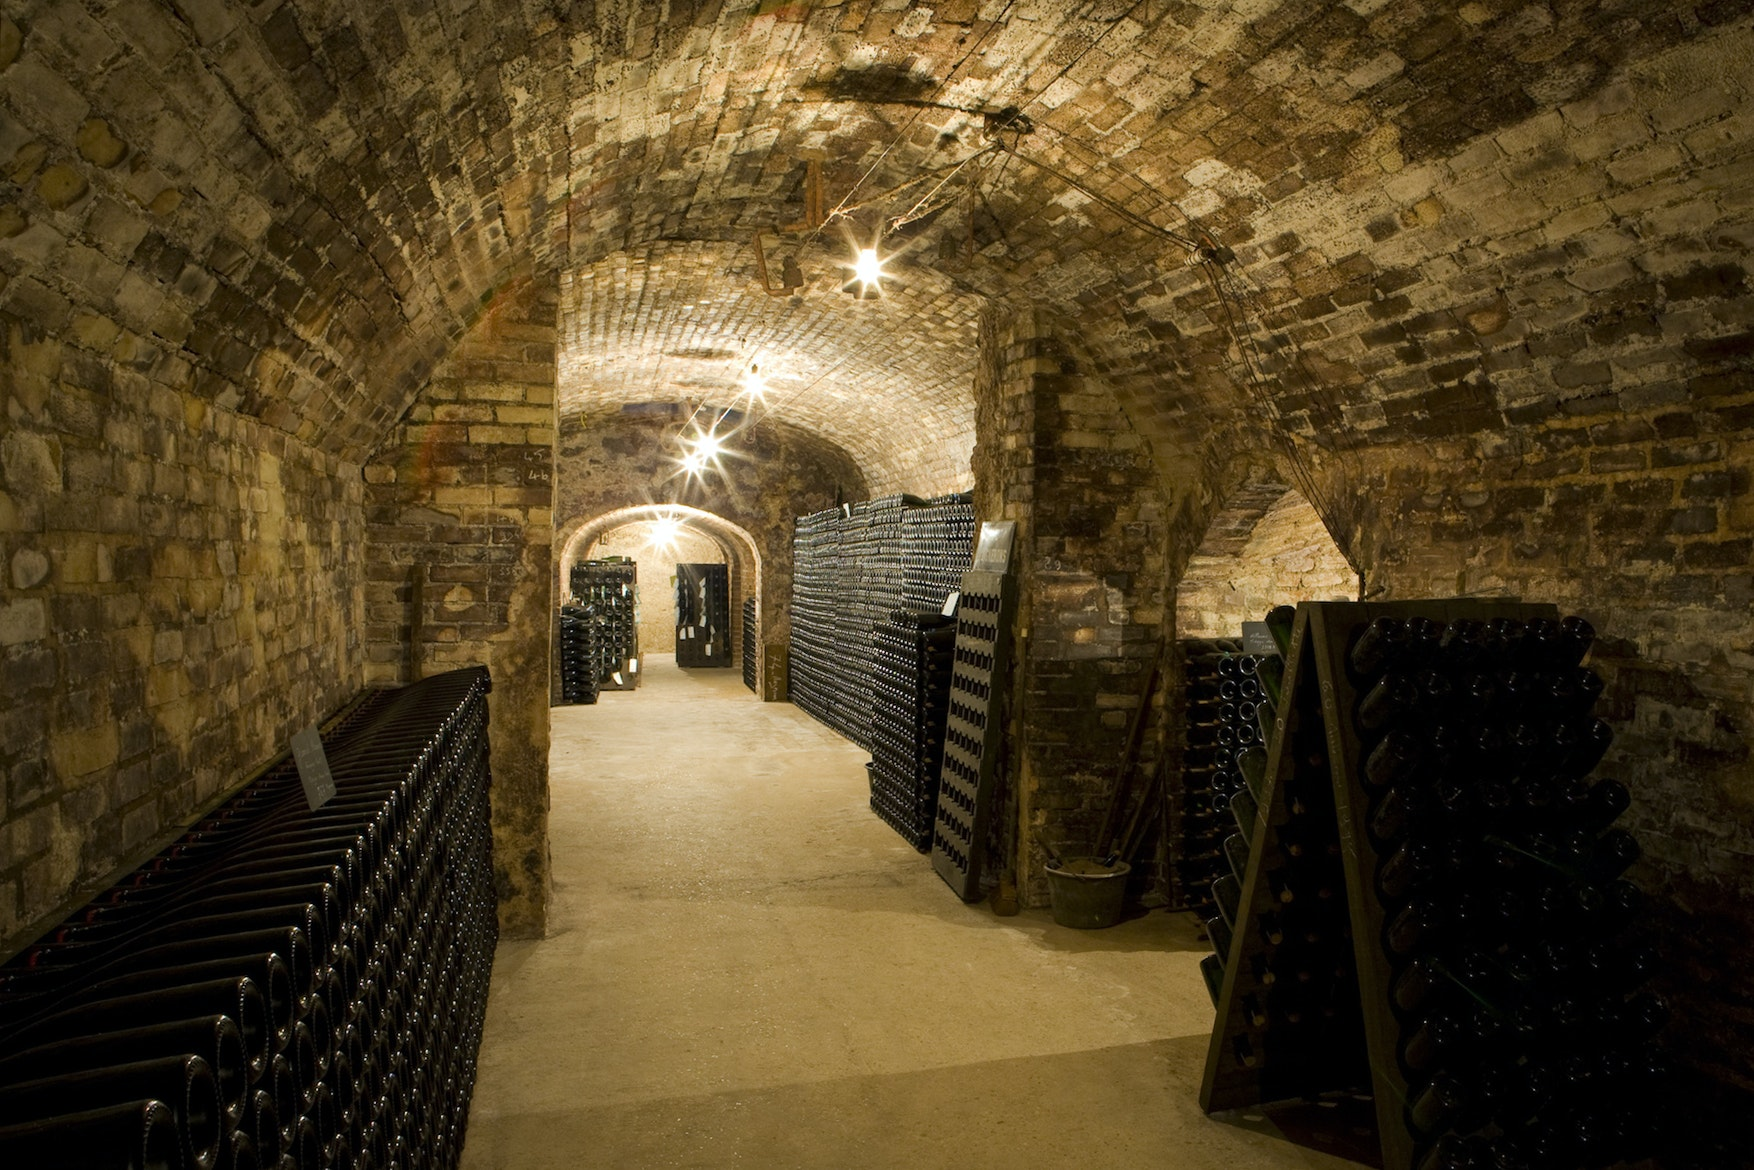 In Épernay, underground champagne cellars provided shelter for local people during World War I and II.